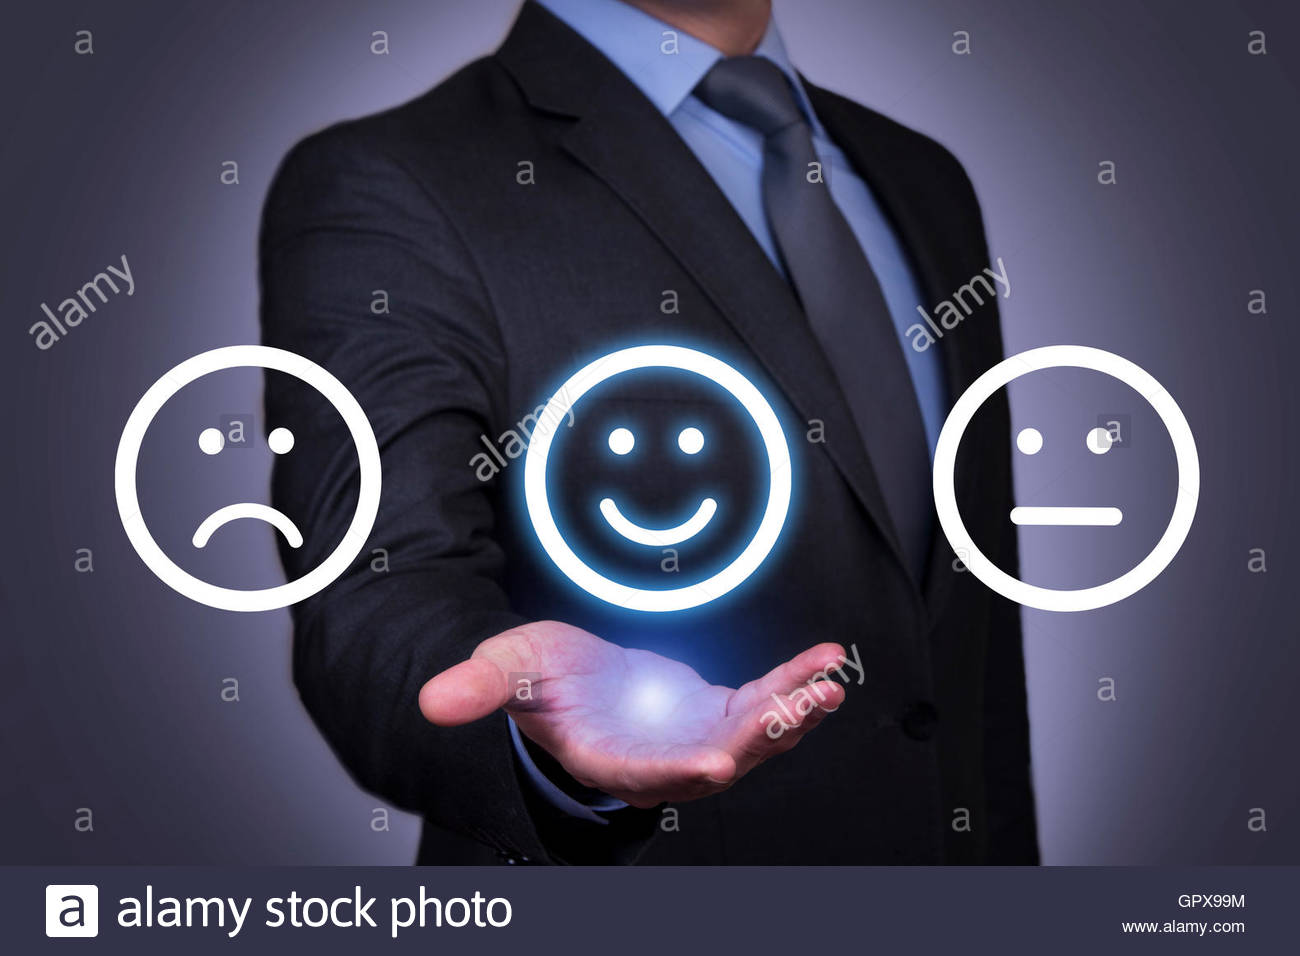 Happy Smileys Human Hand on Touch Screen - Stock Image